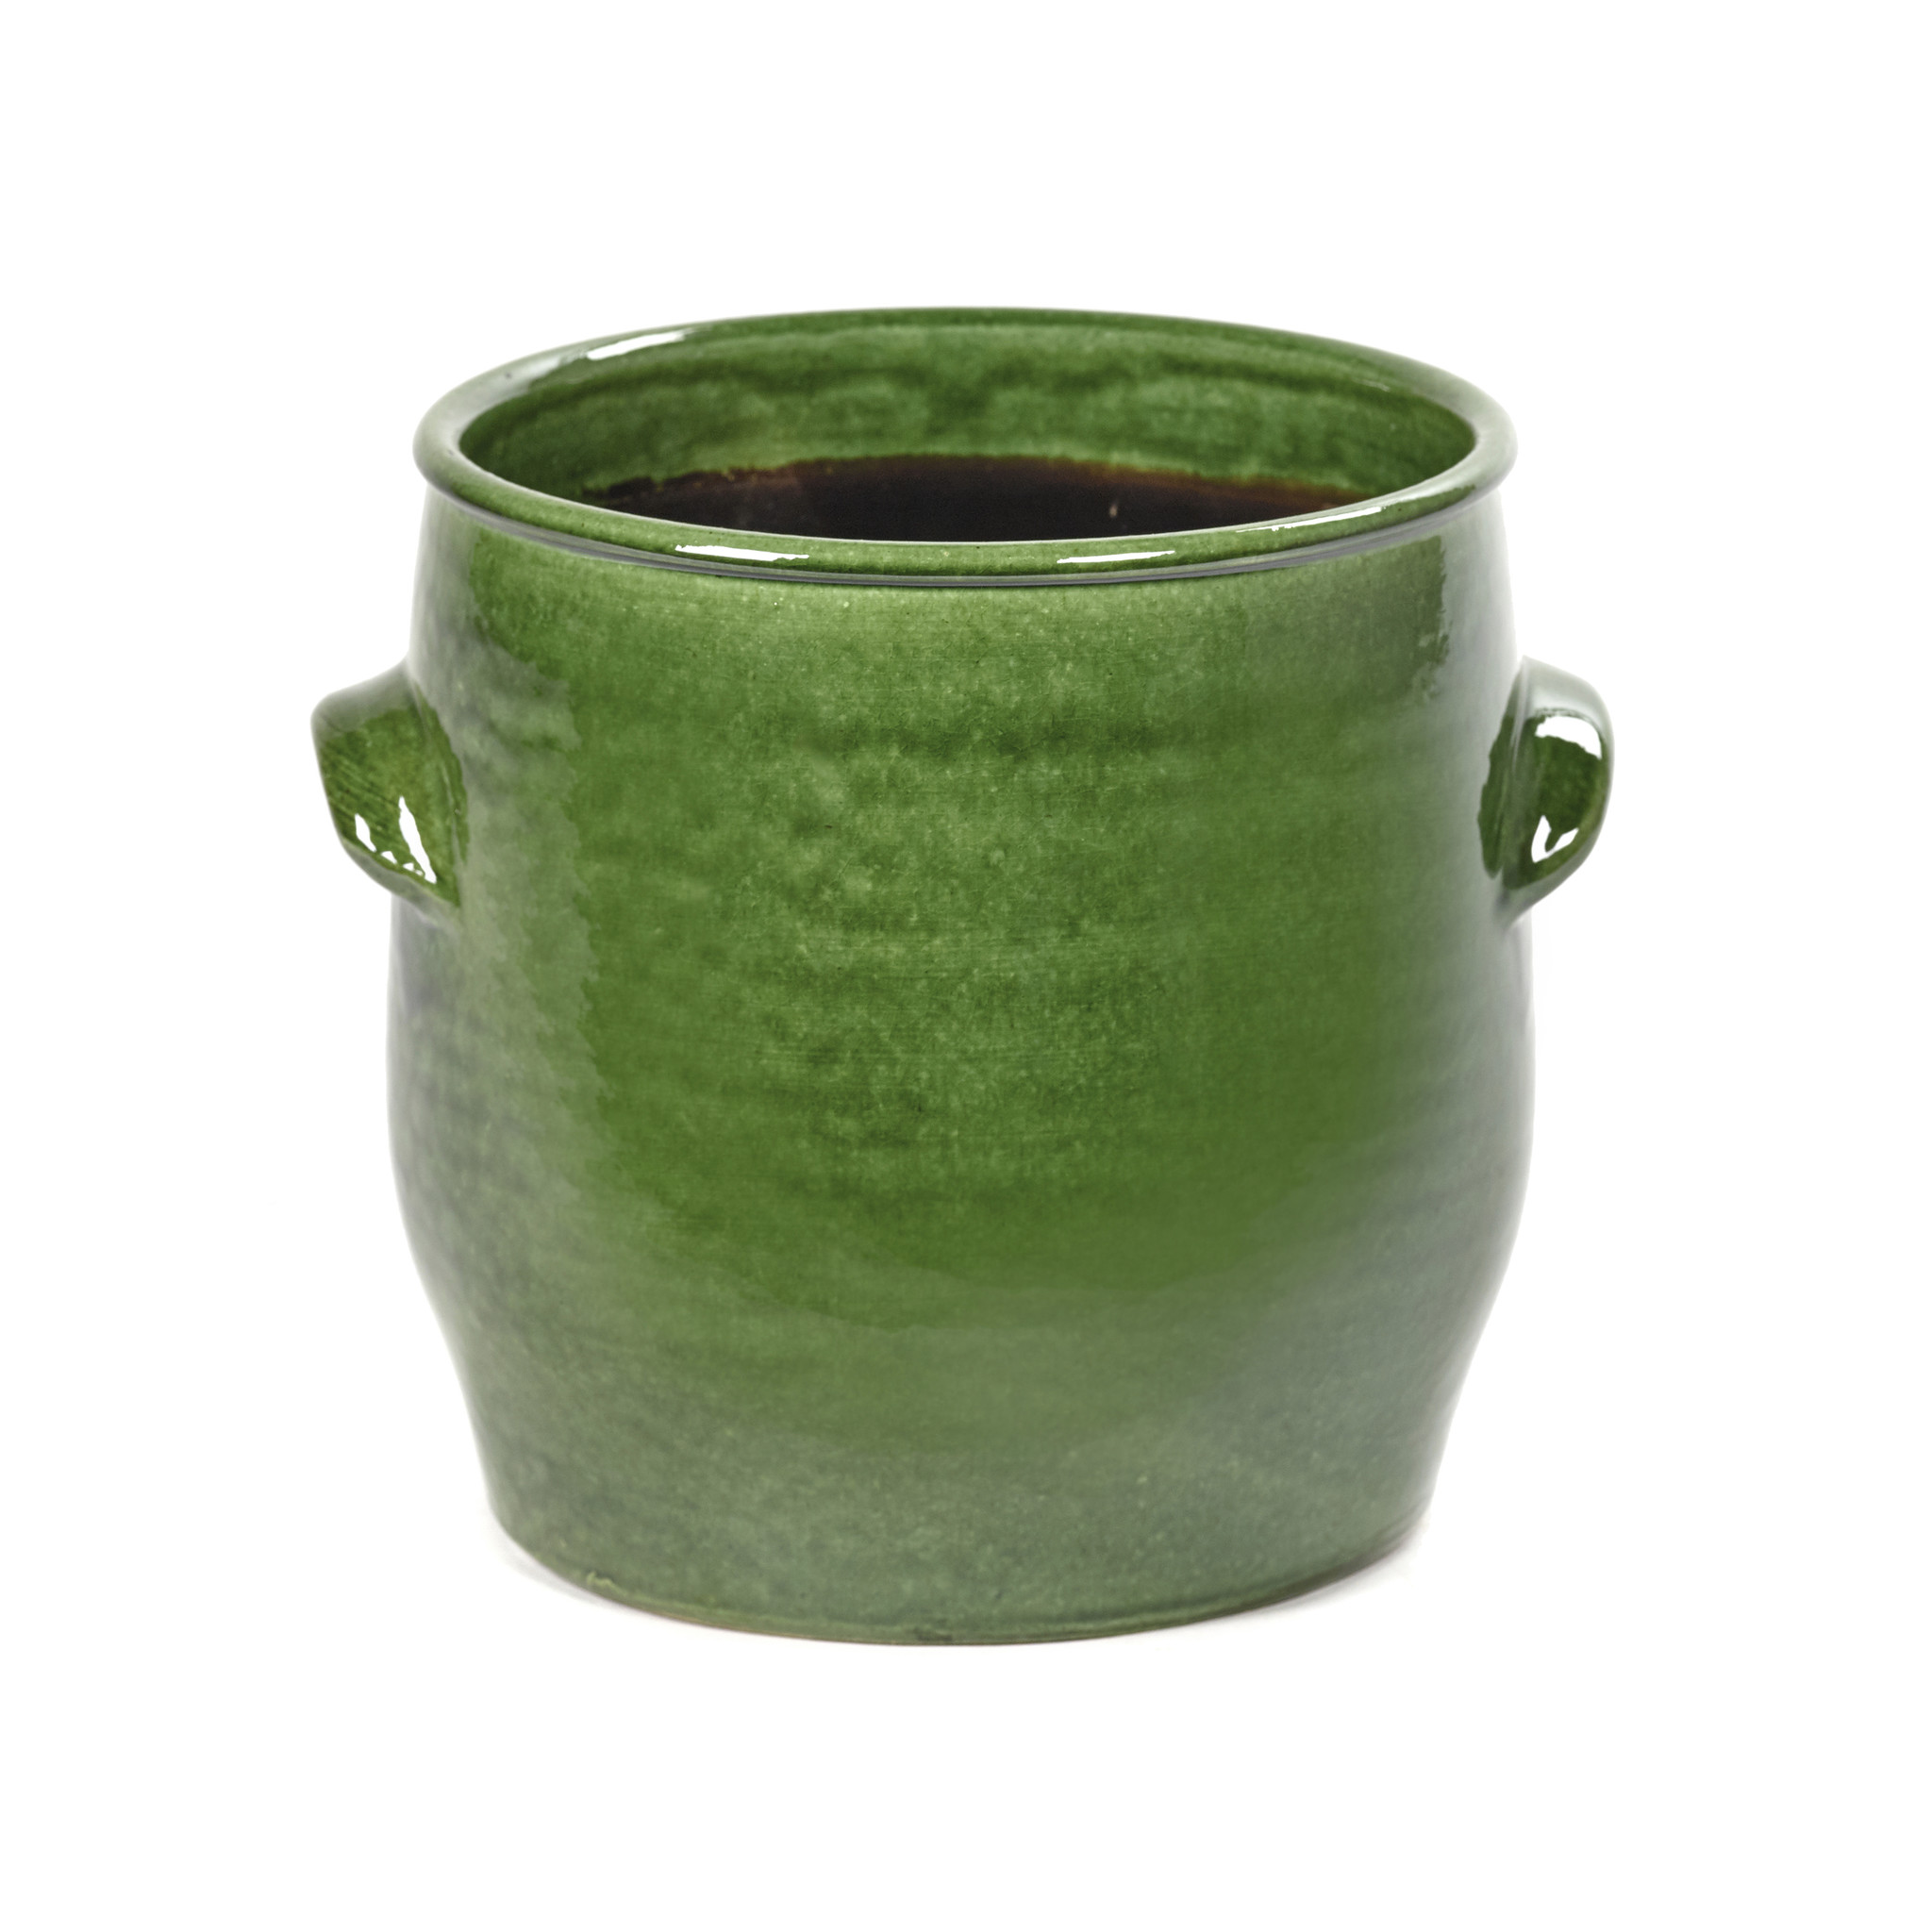 Green ceramic planter